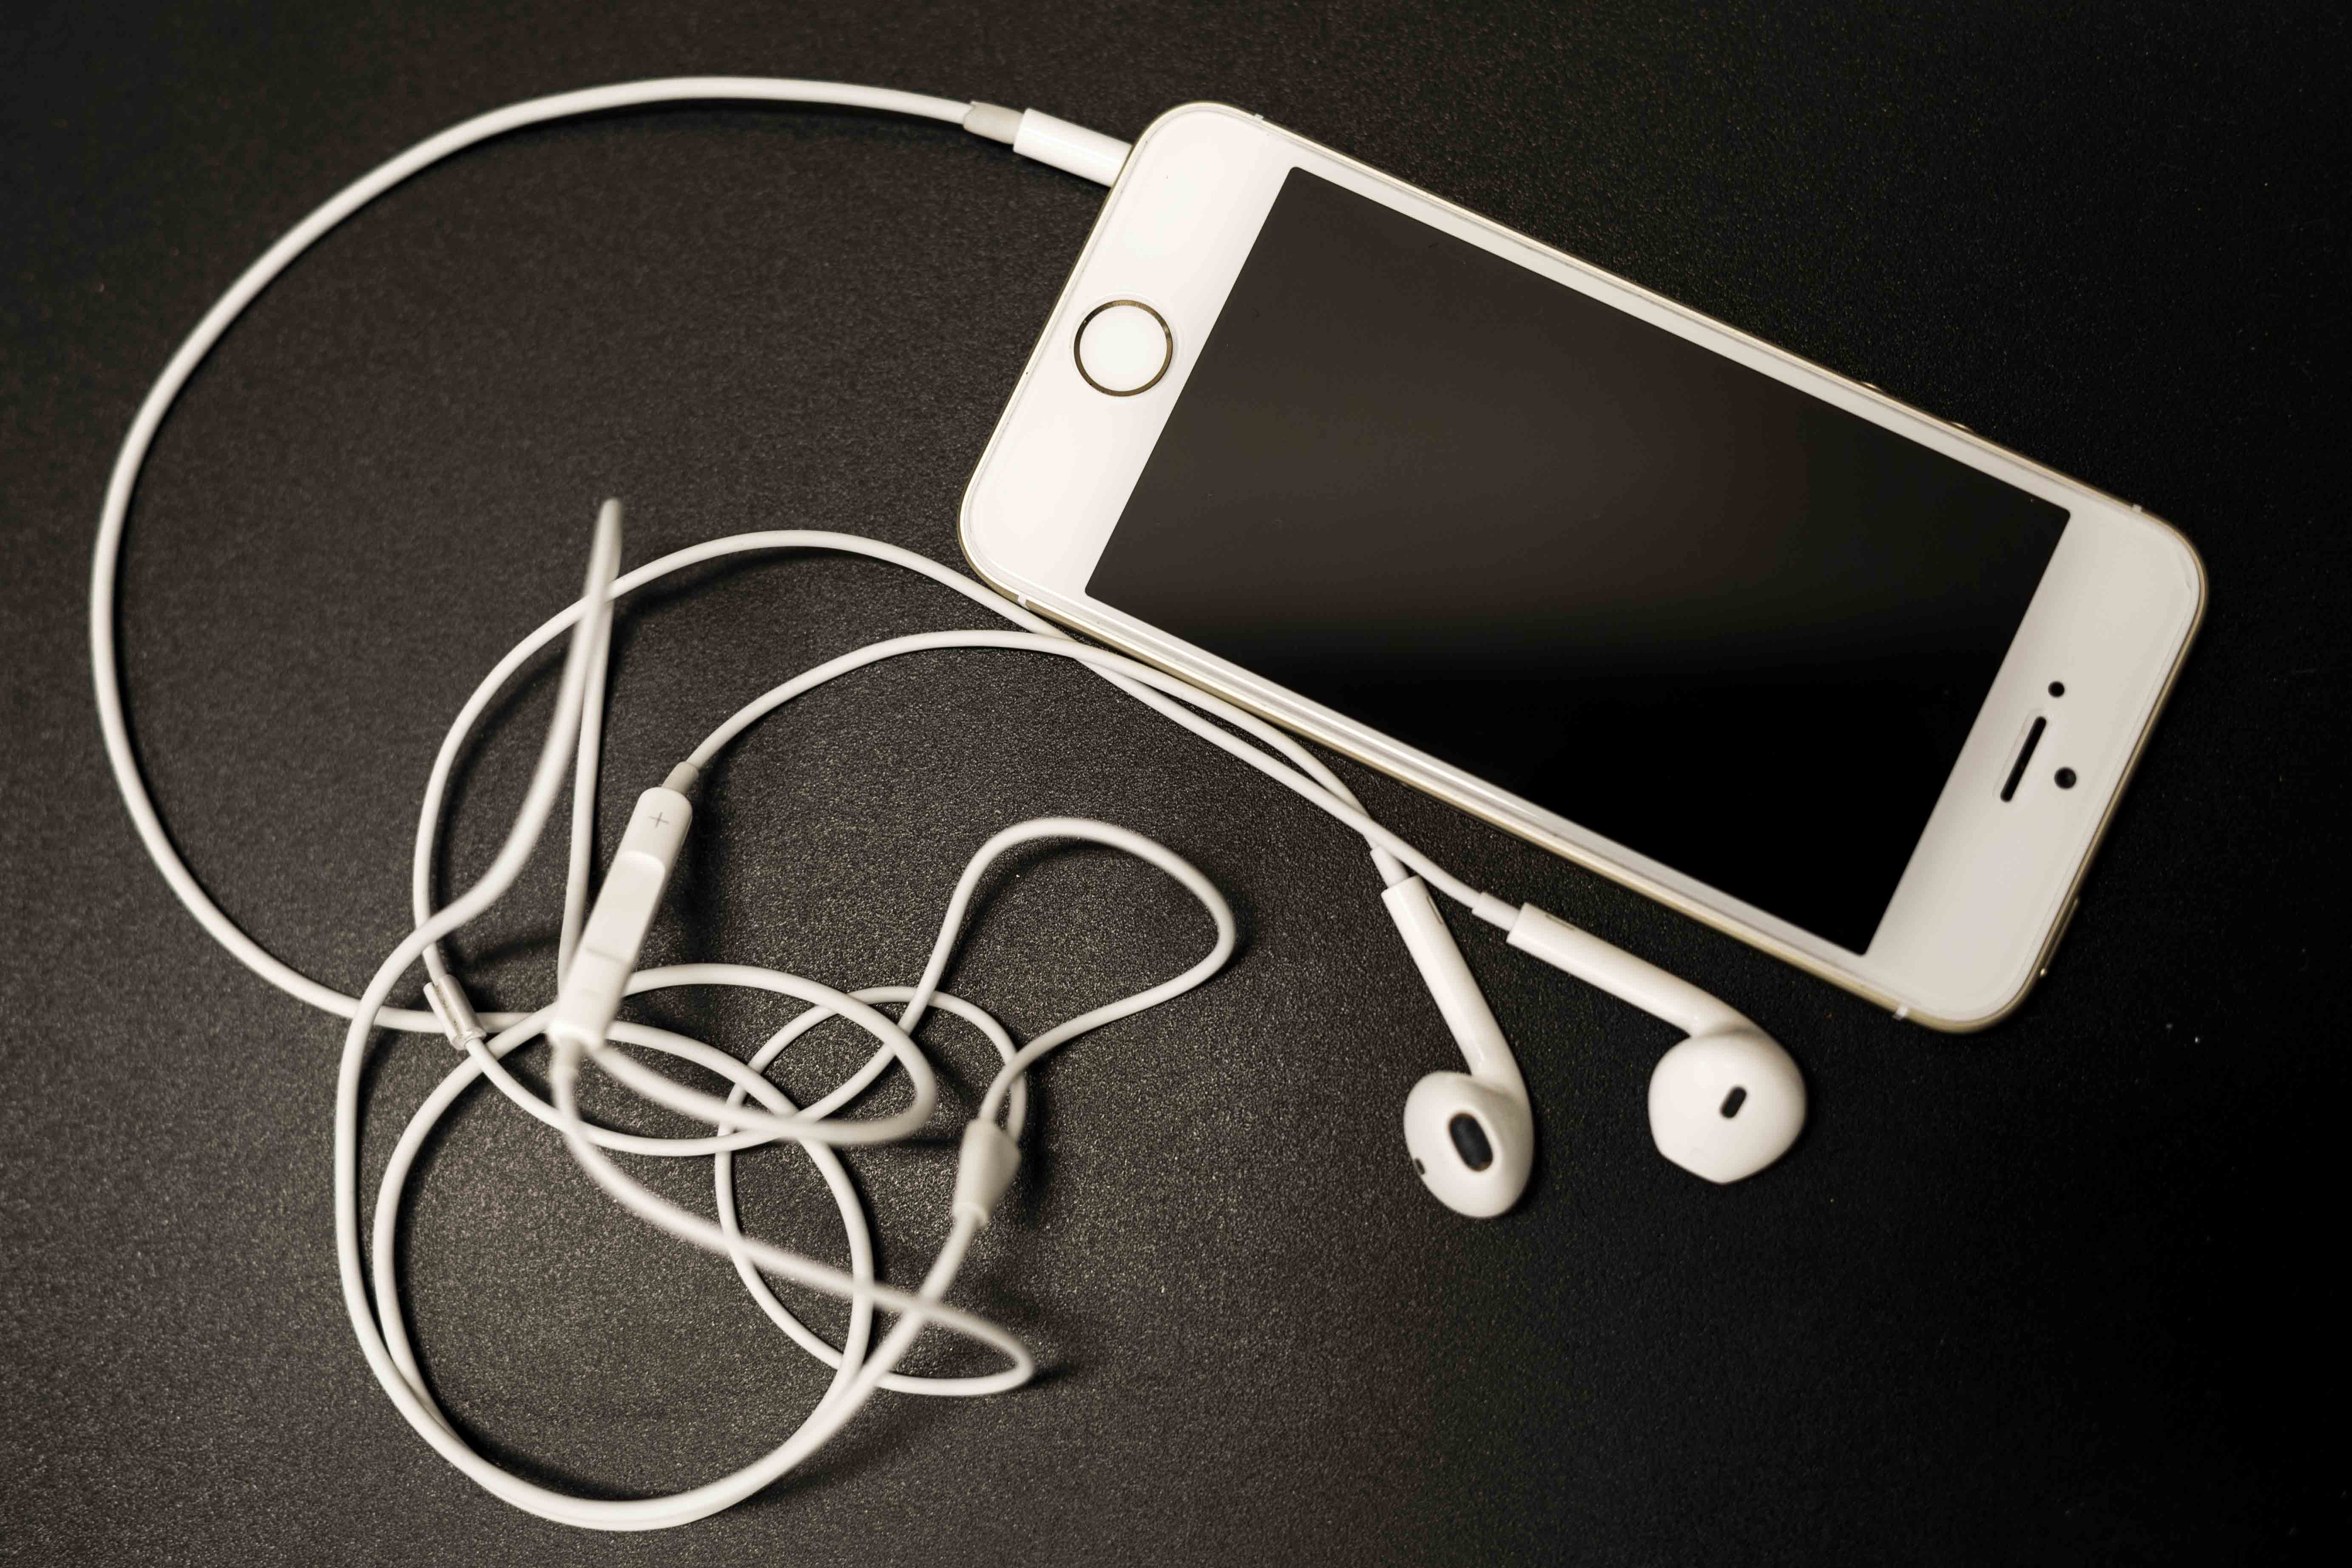 It turns out that iPhones are dirtier than toilets, so avoid the germs and use headphones or earphones instead.